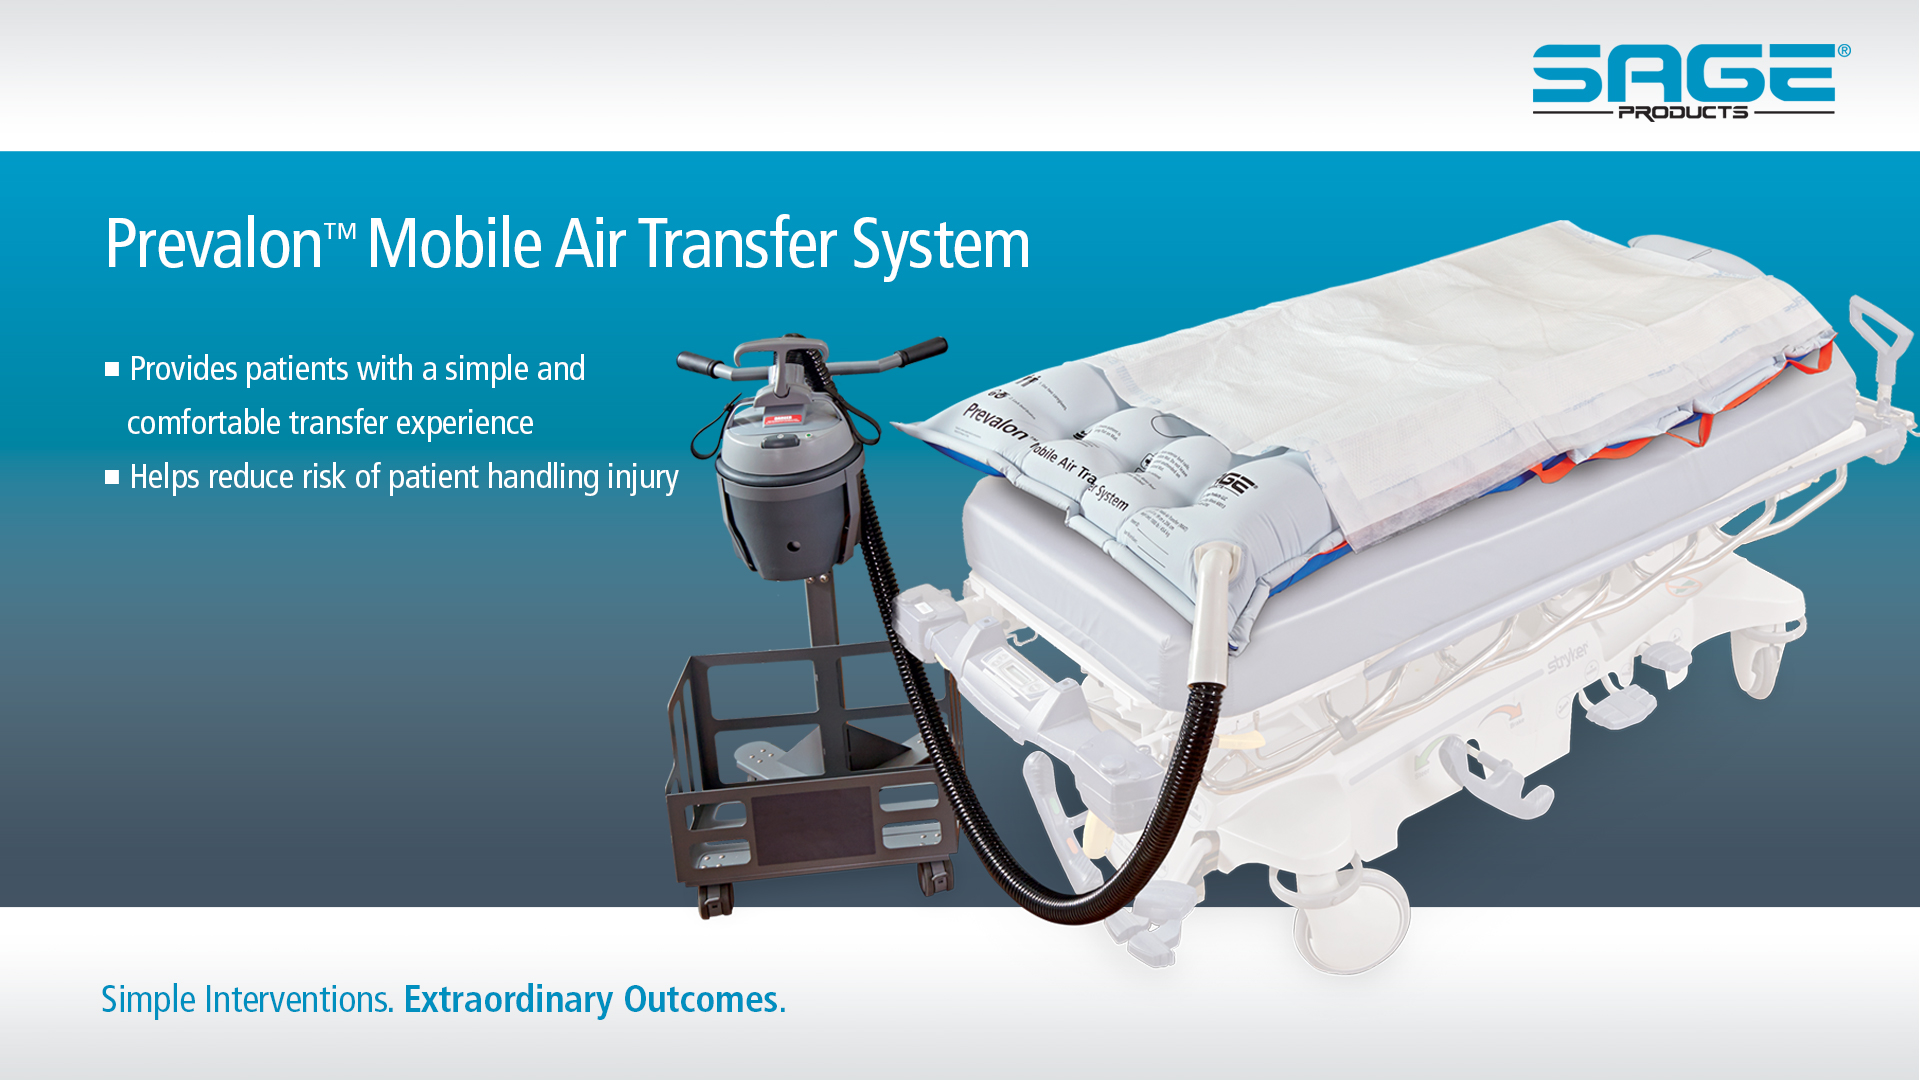 Water bed for patients - Reduce Your Risk Of Injury With Patient Transfer Systems Sage Products Llc